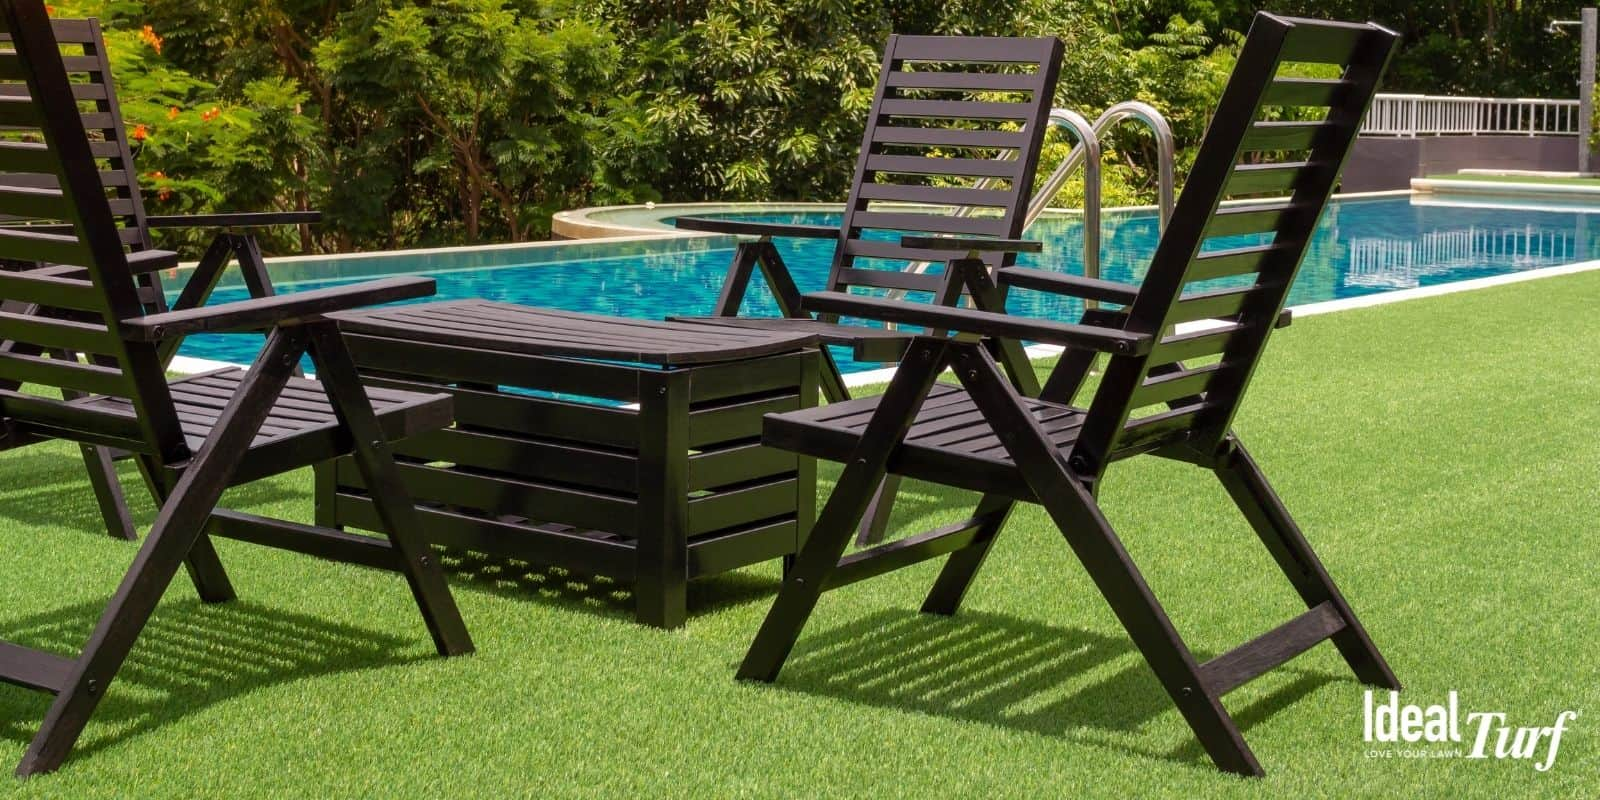 Swimming pool in backyard surrounded by artificial turf